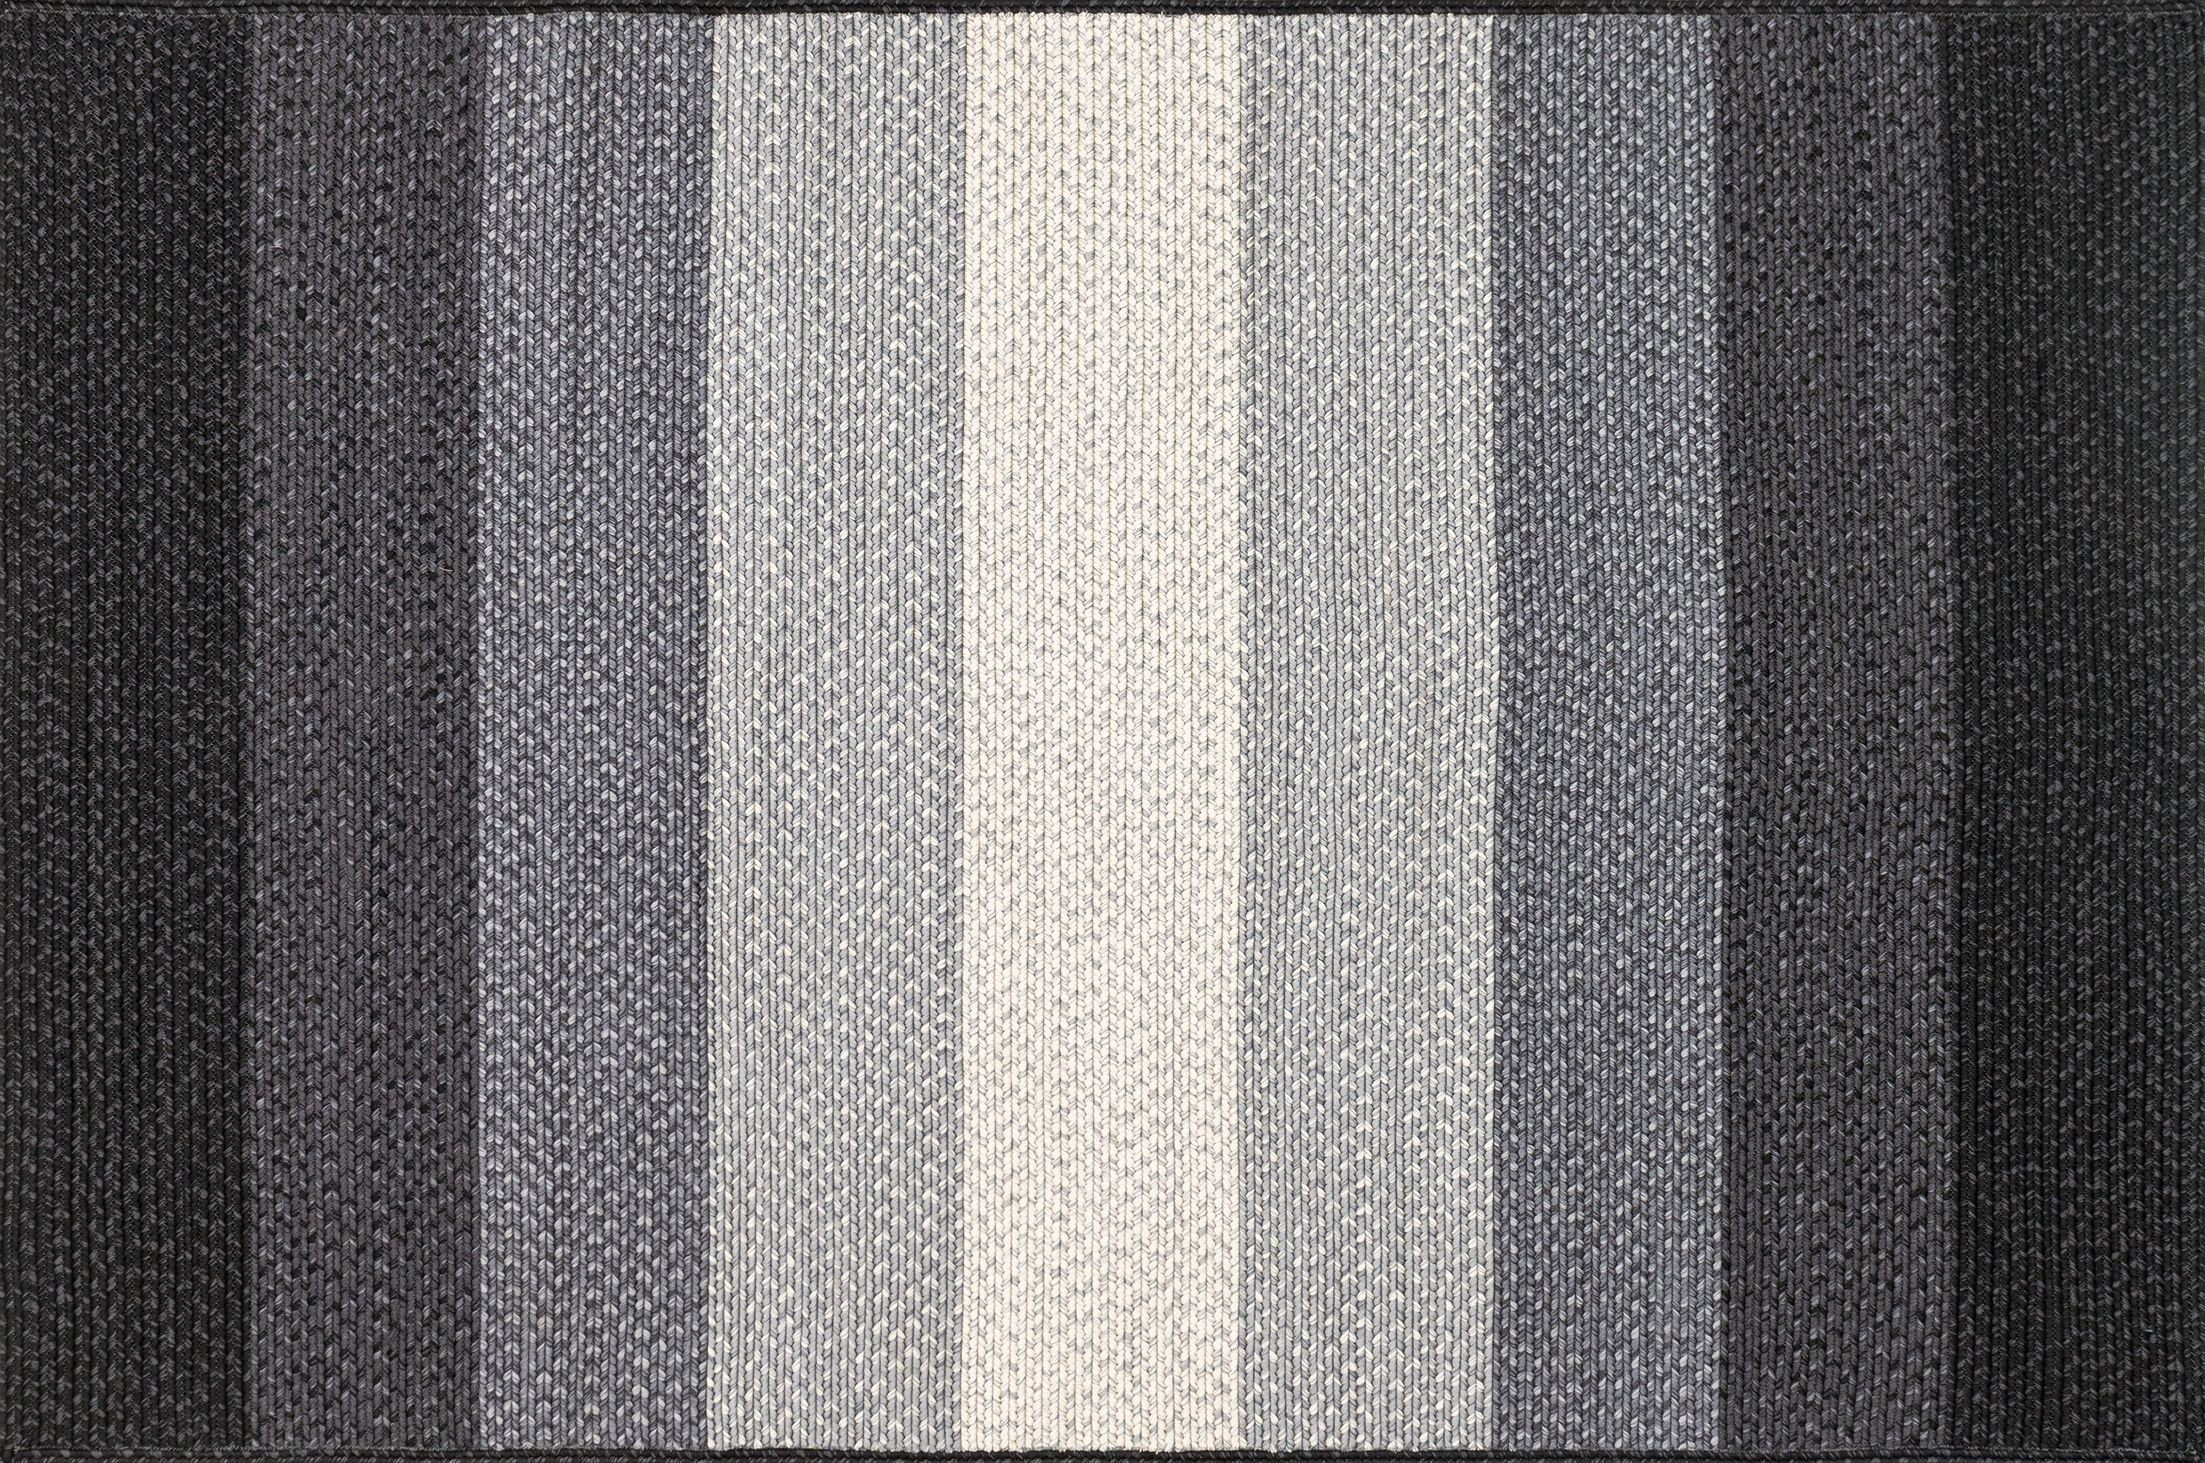 Barta Hand-Braided Black/Ivory Indoor/Outdoor Area Rug Rug Size: Rectangle 5' x 7'6